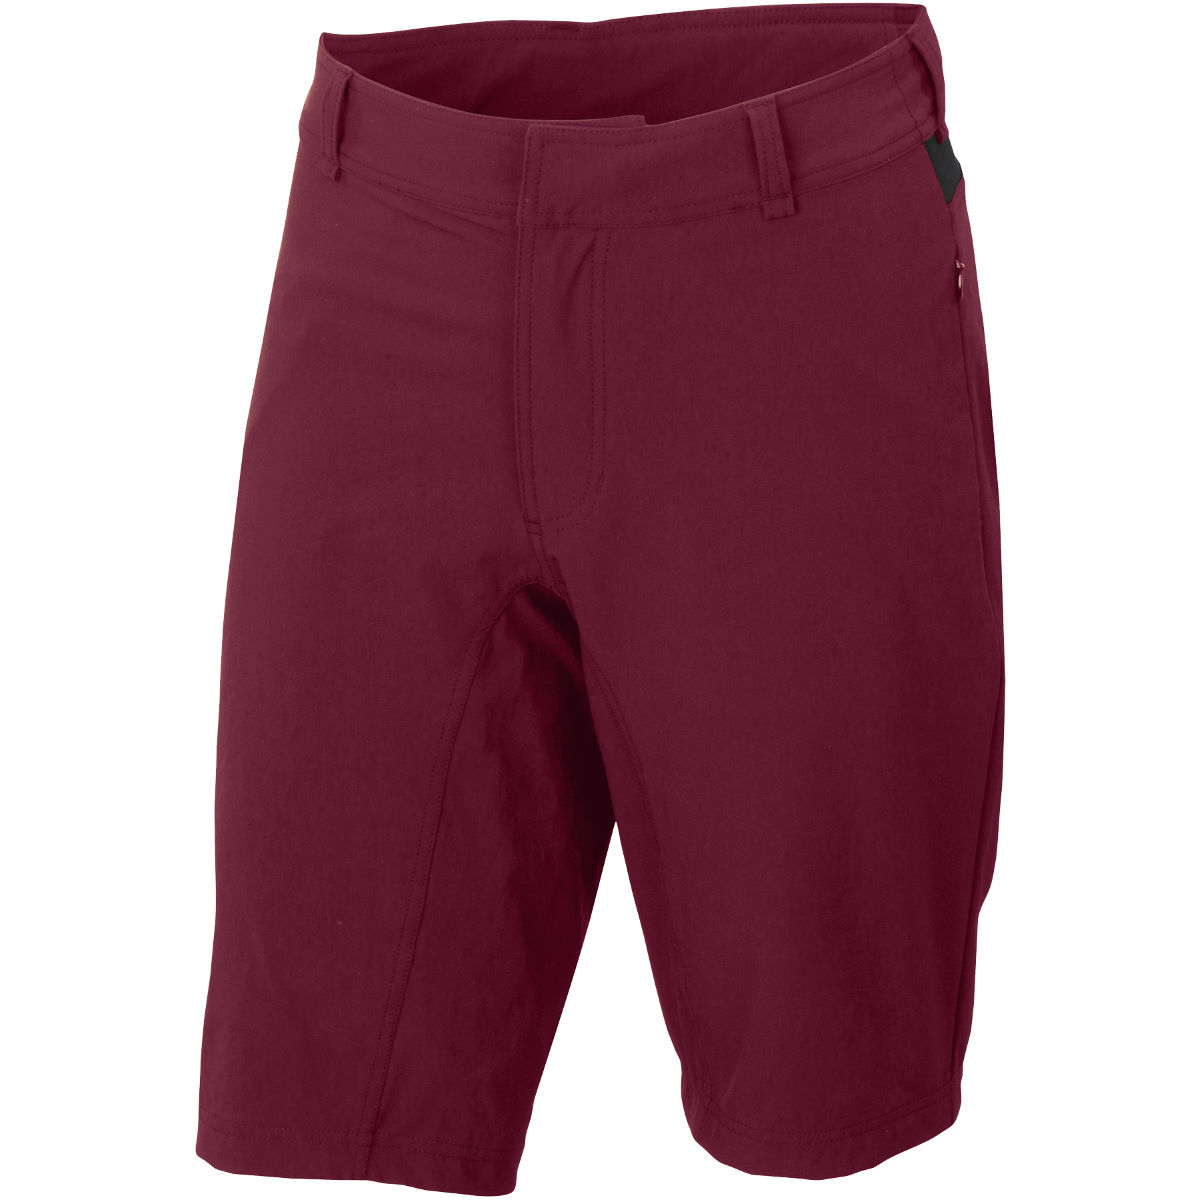 Sportful Giara Over Shorts - Xl Red Wine  Baggy Shorts